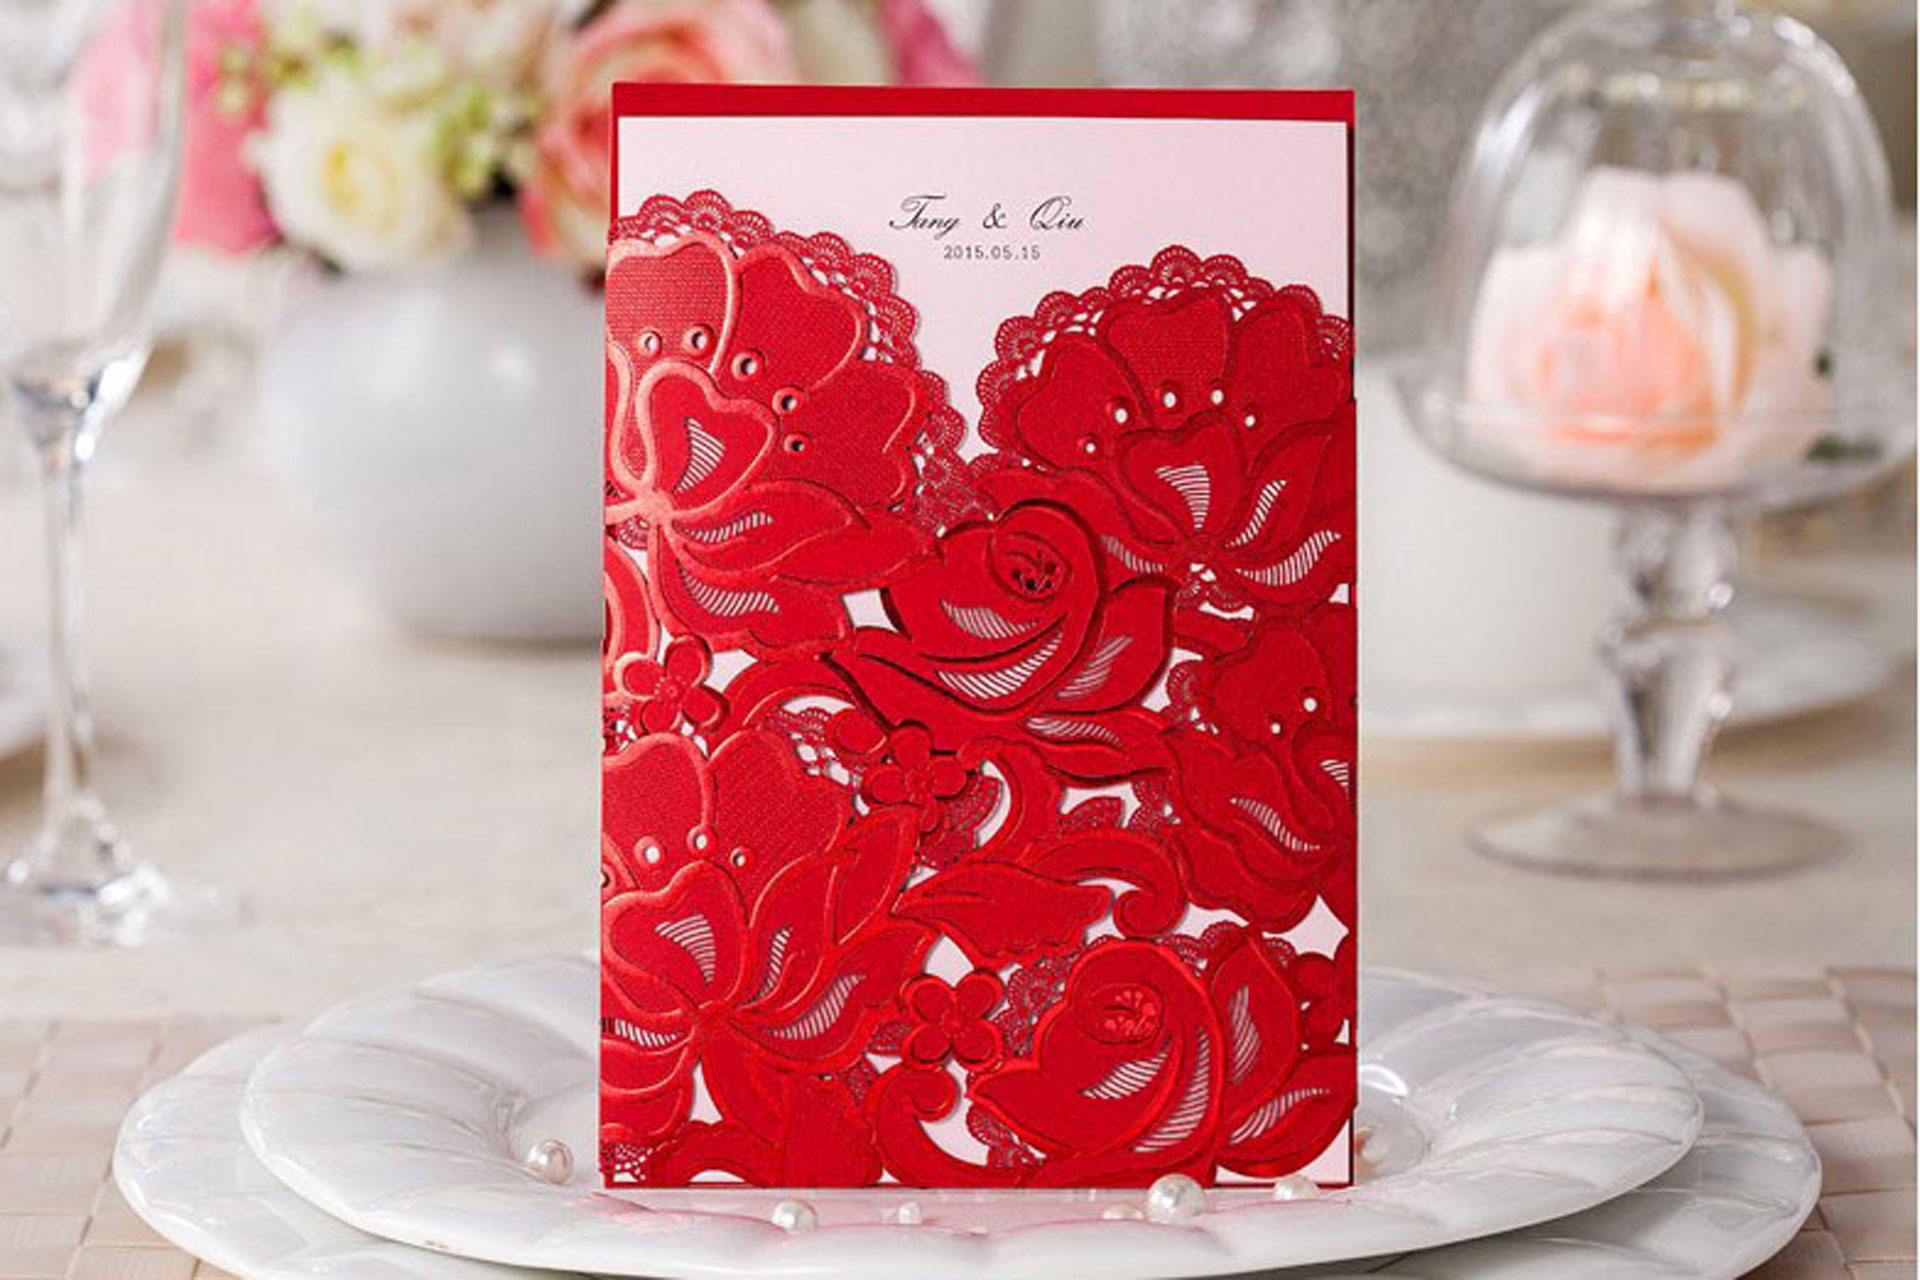 What You Must Know Before Making Invitation Cards For Your